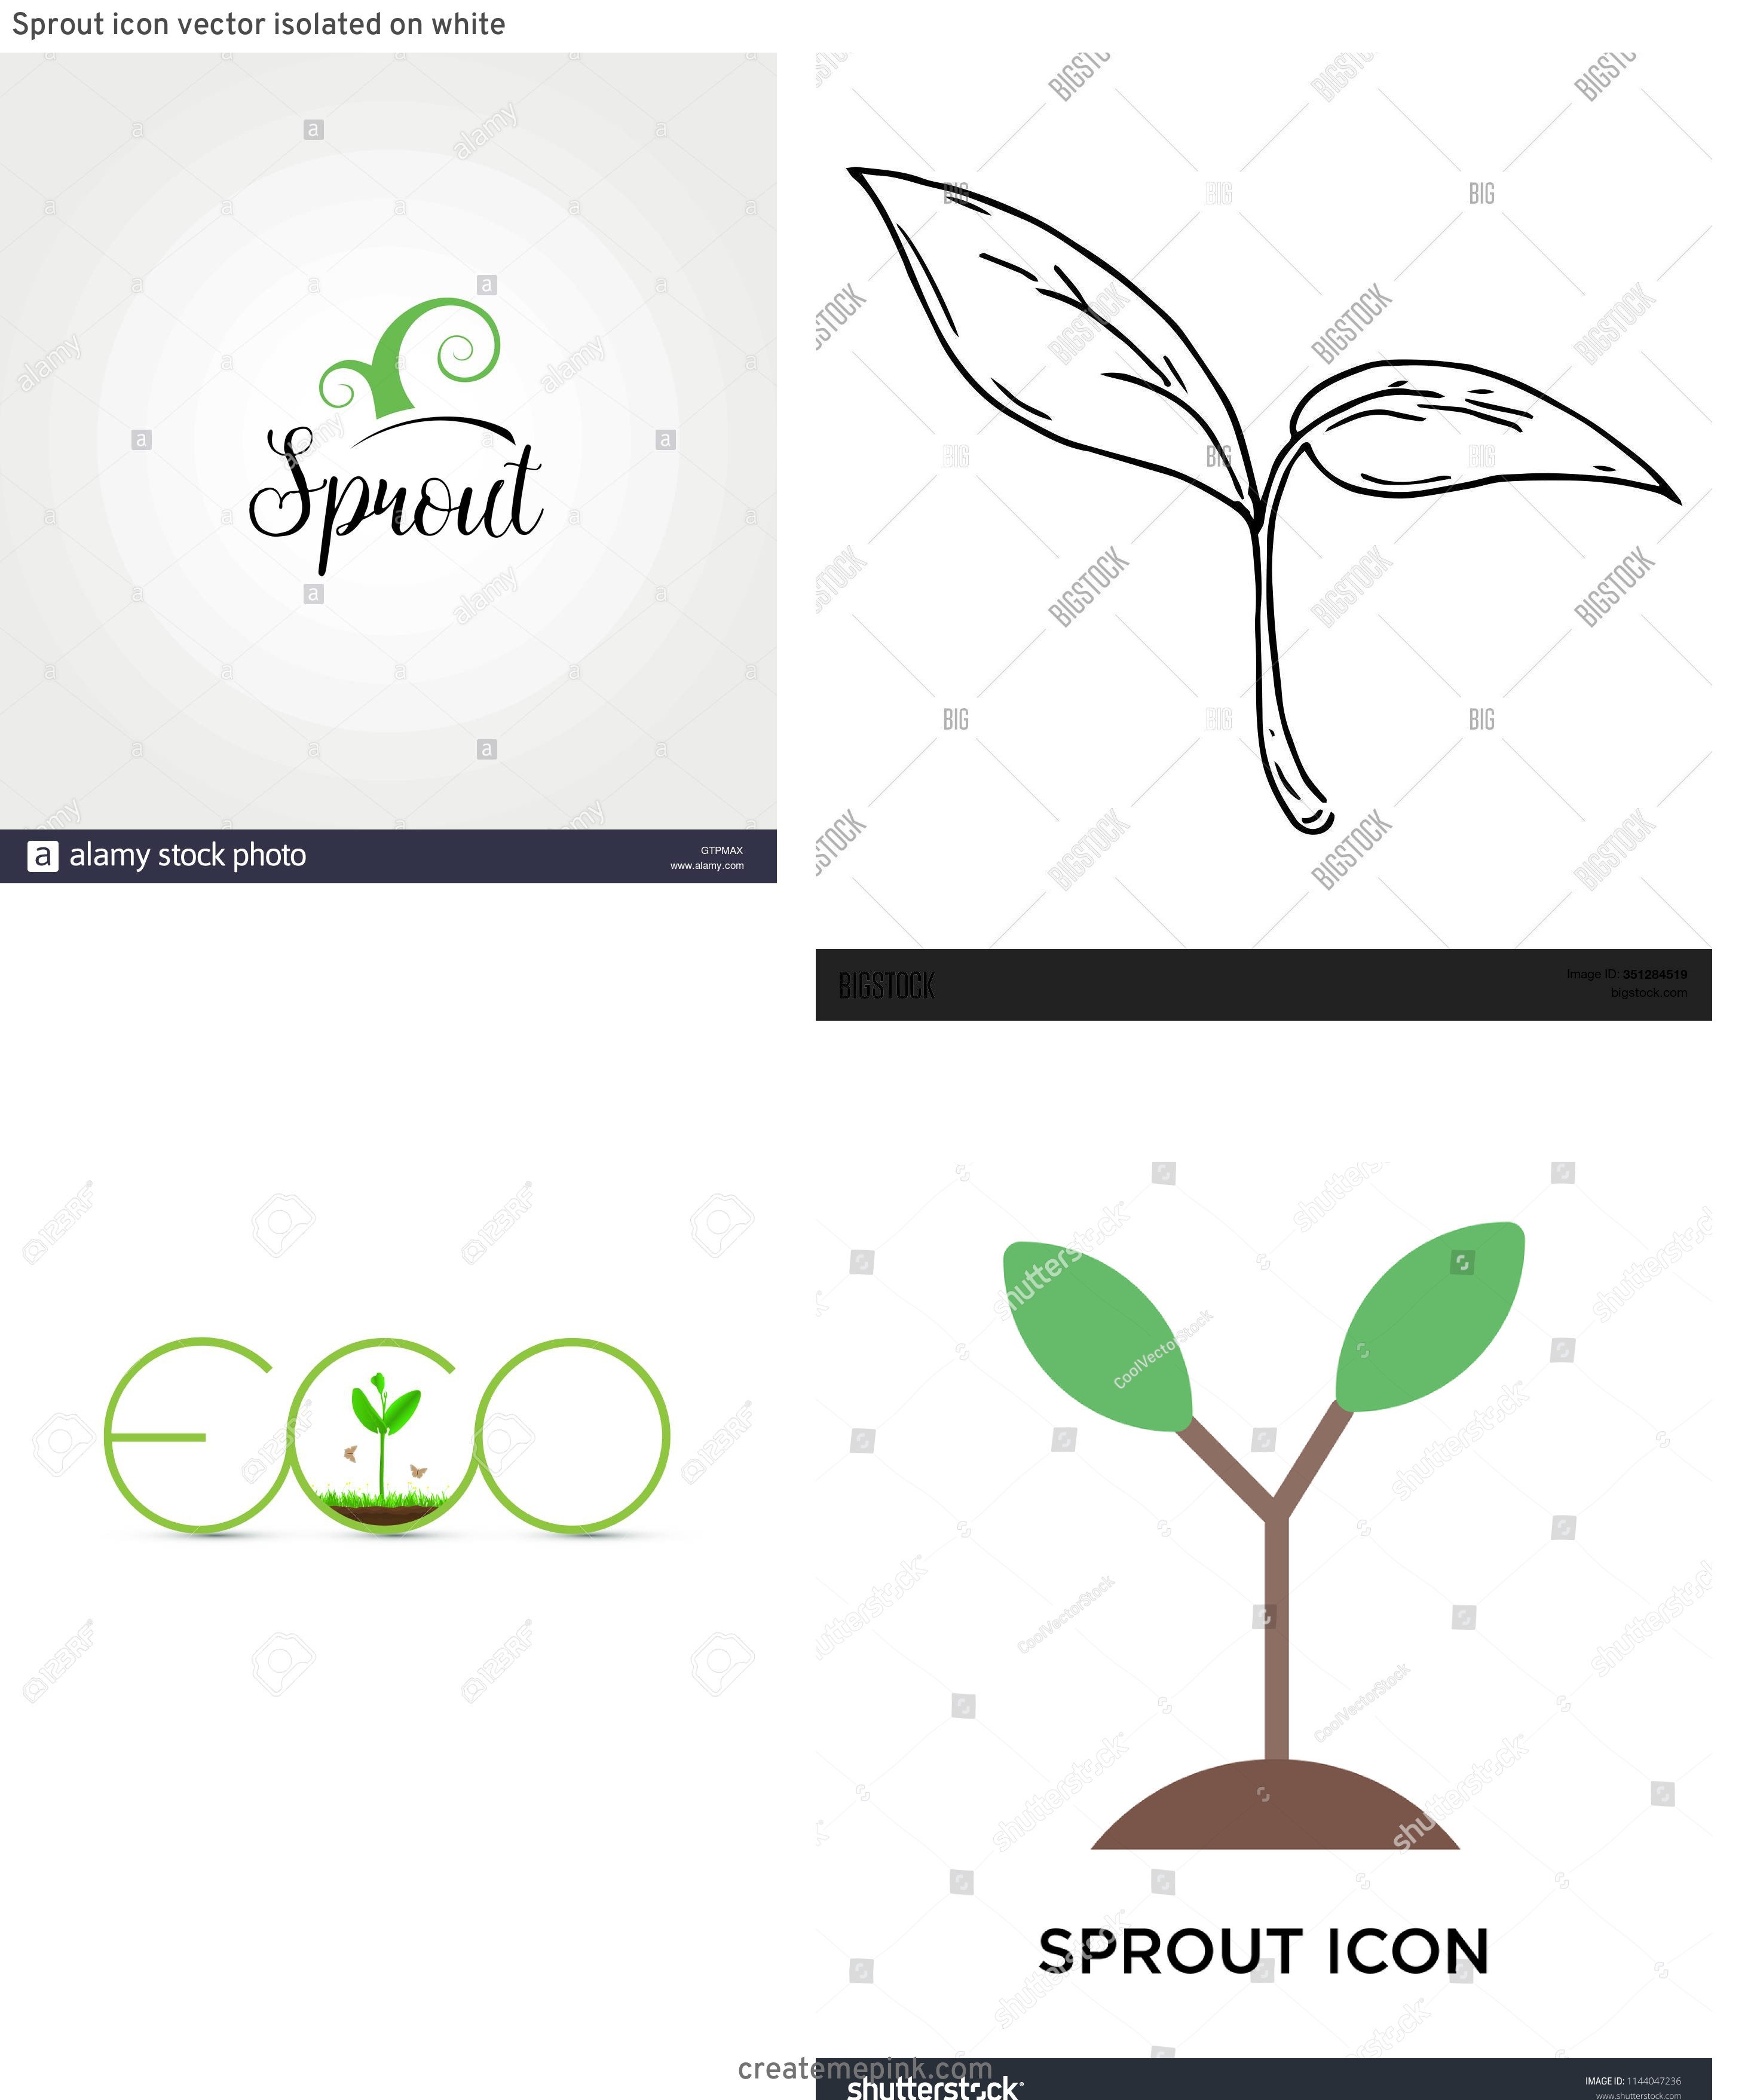 Sprout Icon Vector: Sprout Icon Vector Isolated On White